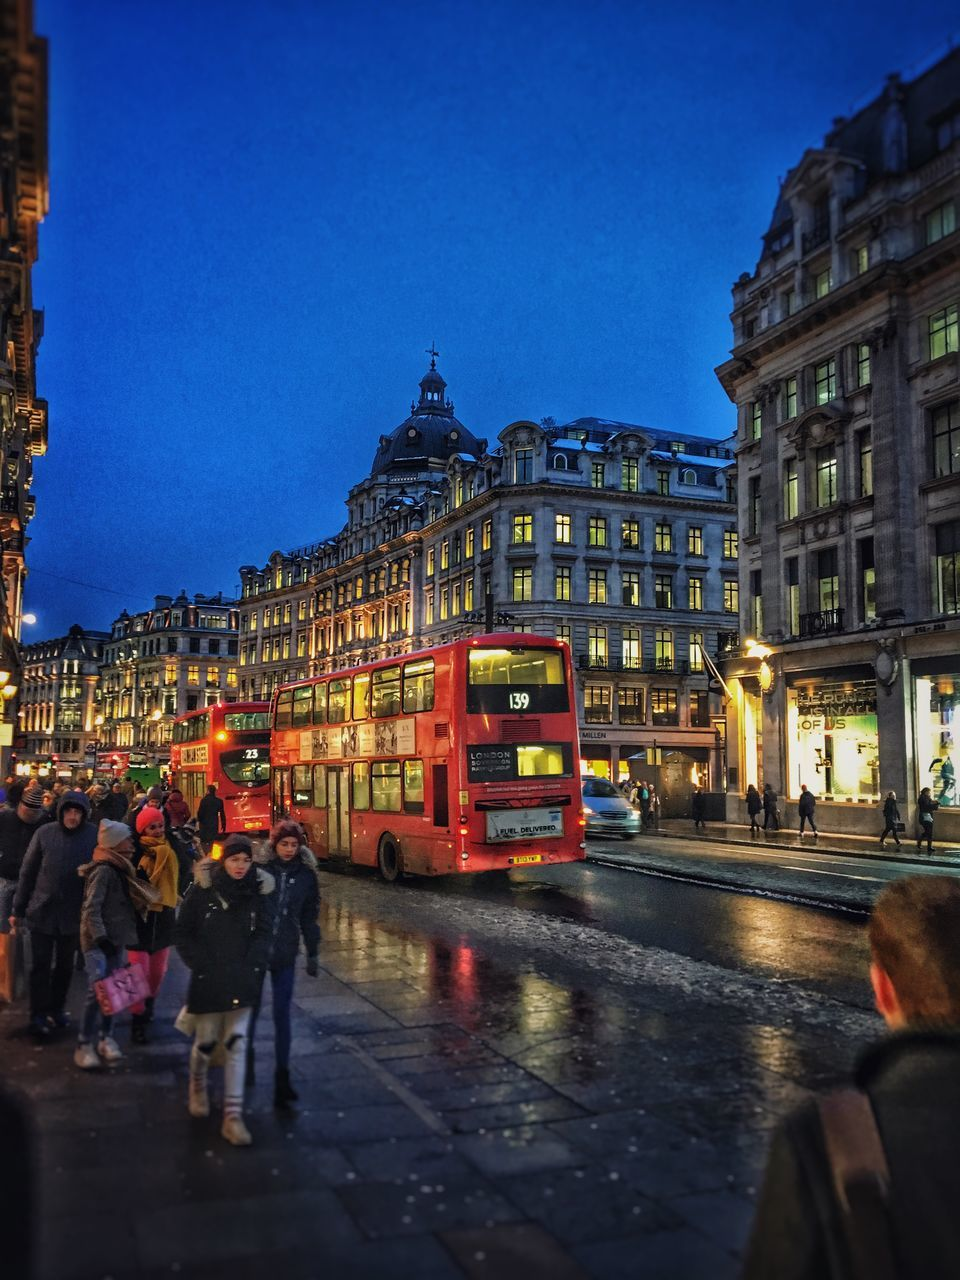 building exterior, architecture, built structure, city, building, street, illuminated, real people, sky, dusk, nature, group of people, city life, transportation, clear sky, women, blue, wet, men, night, outdoors, rain